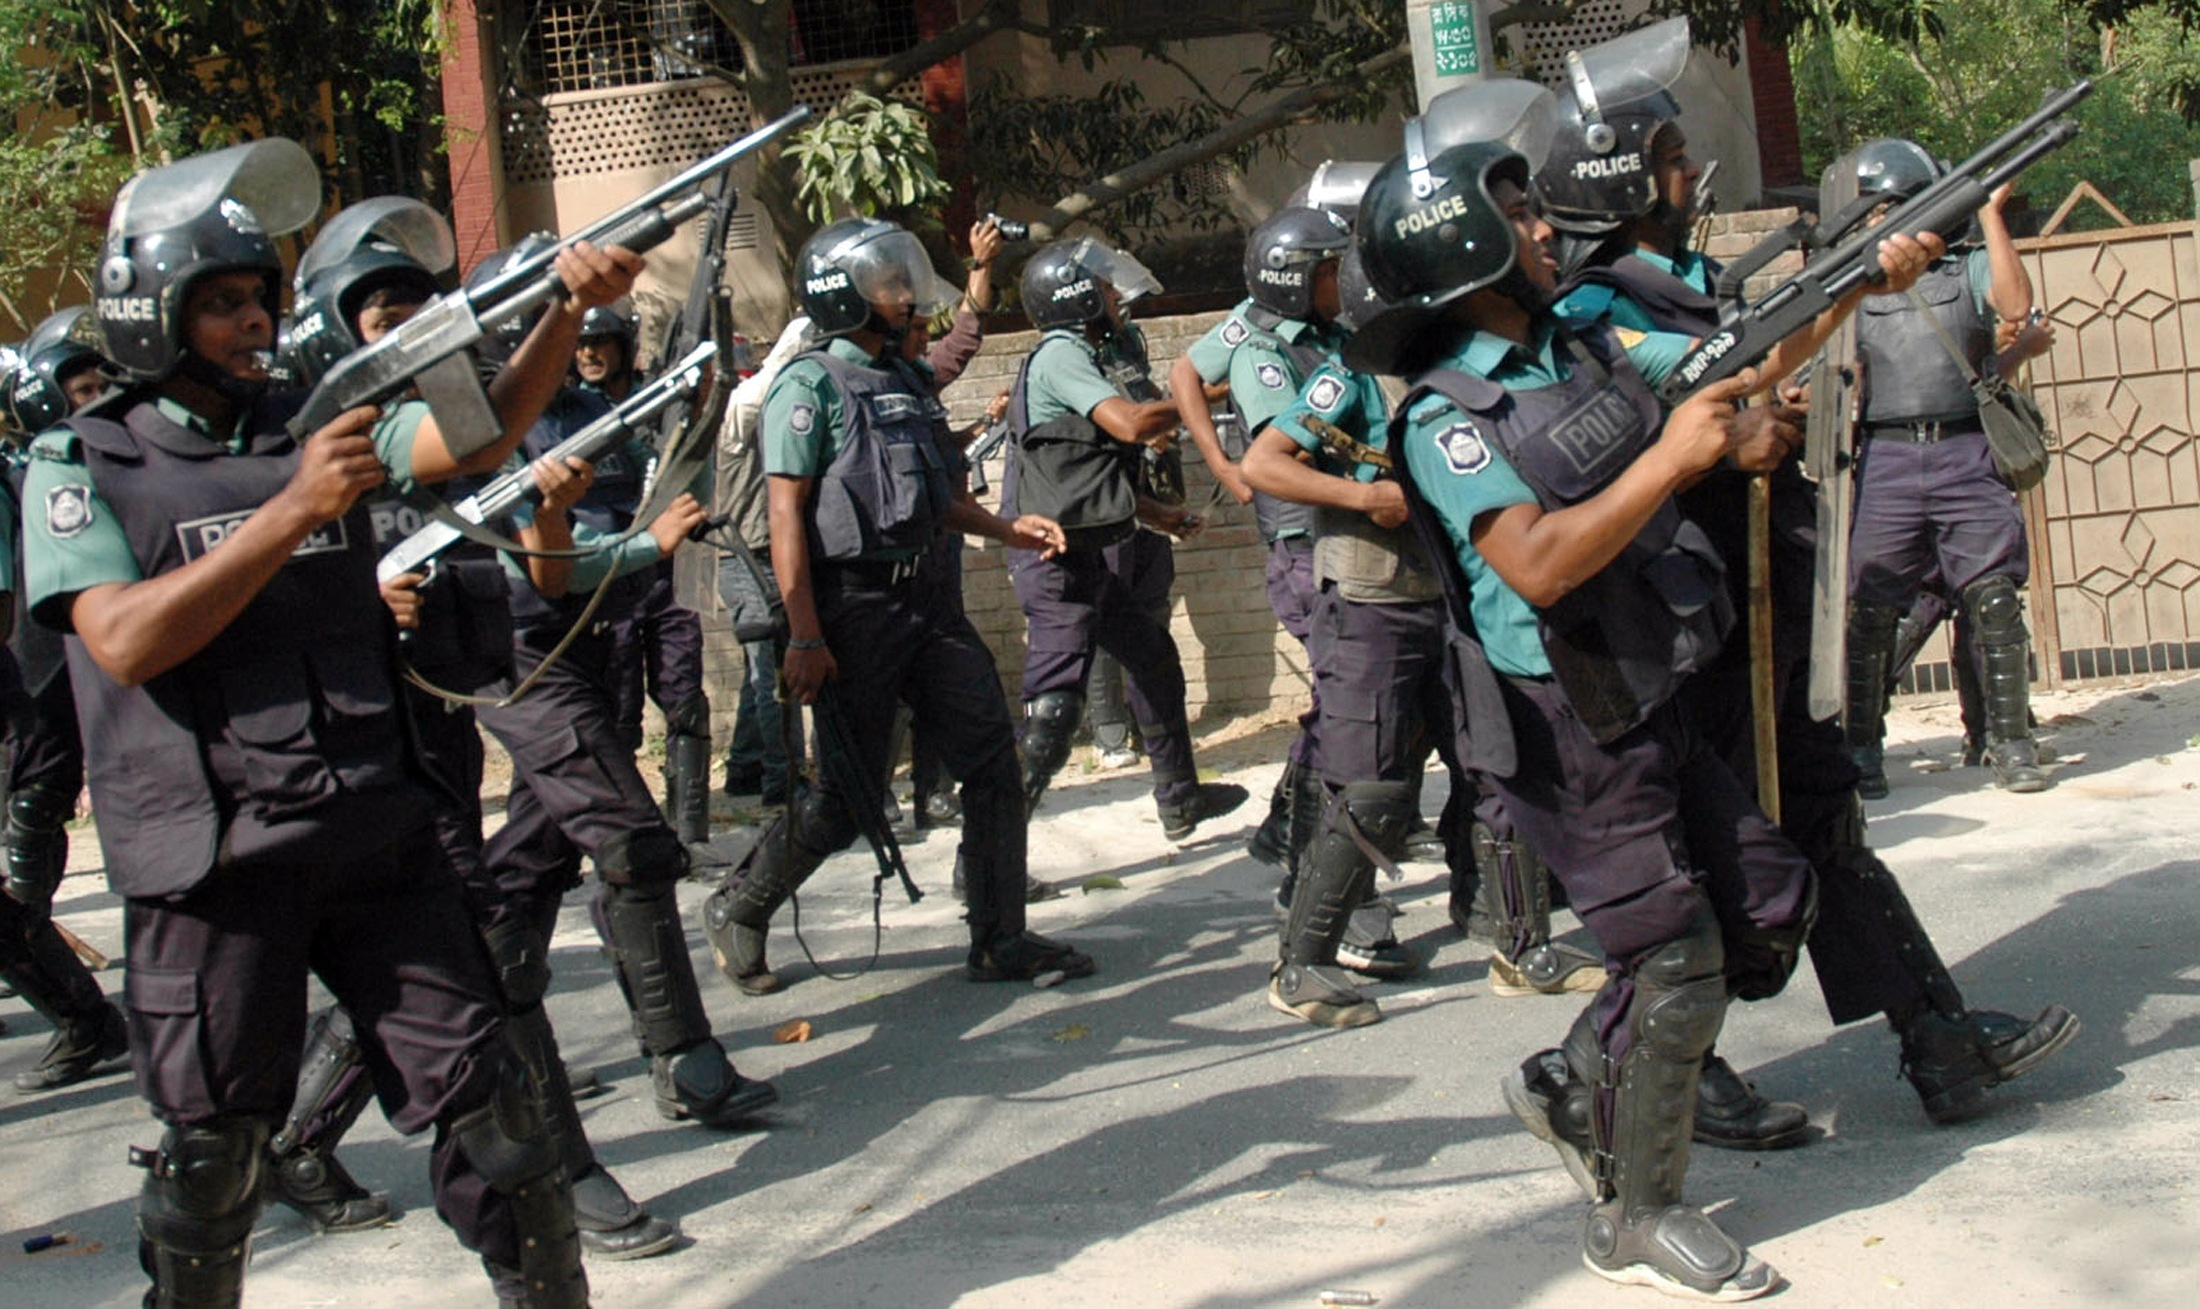 Clashes continue in Bangladesh after Jamaat leader's sentencing